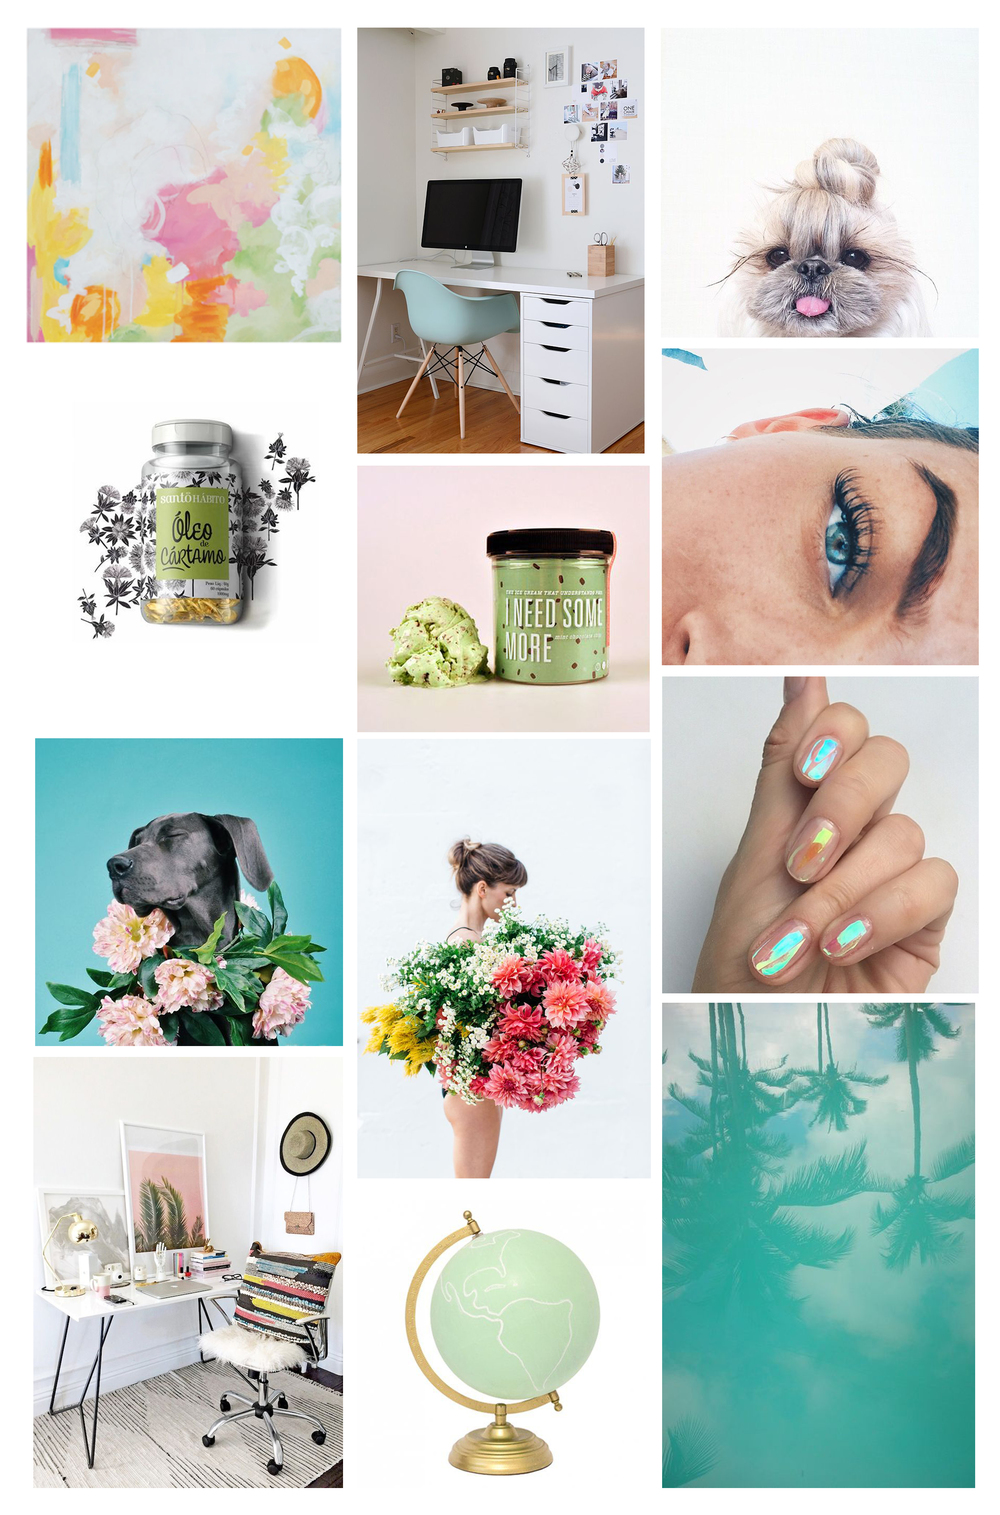 WEEKLY INSPIRATION WITH MONDAY MOOD BOARD 38 | THE PAPER CURATOR